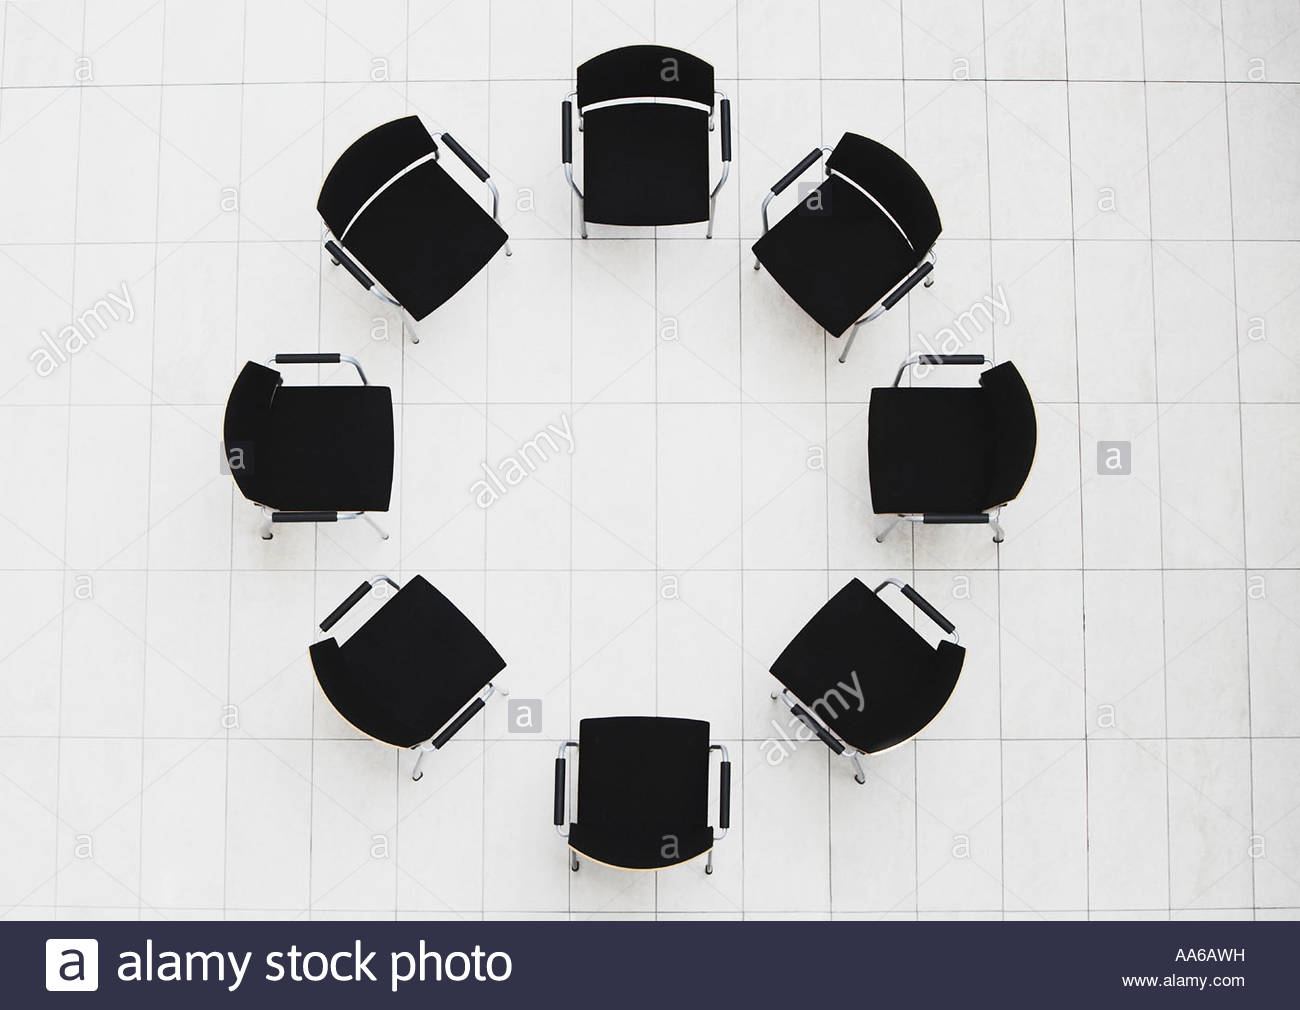 Aerial View Of Empty Chairs In A Circle Stock Photo